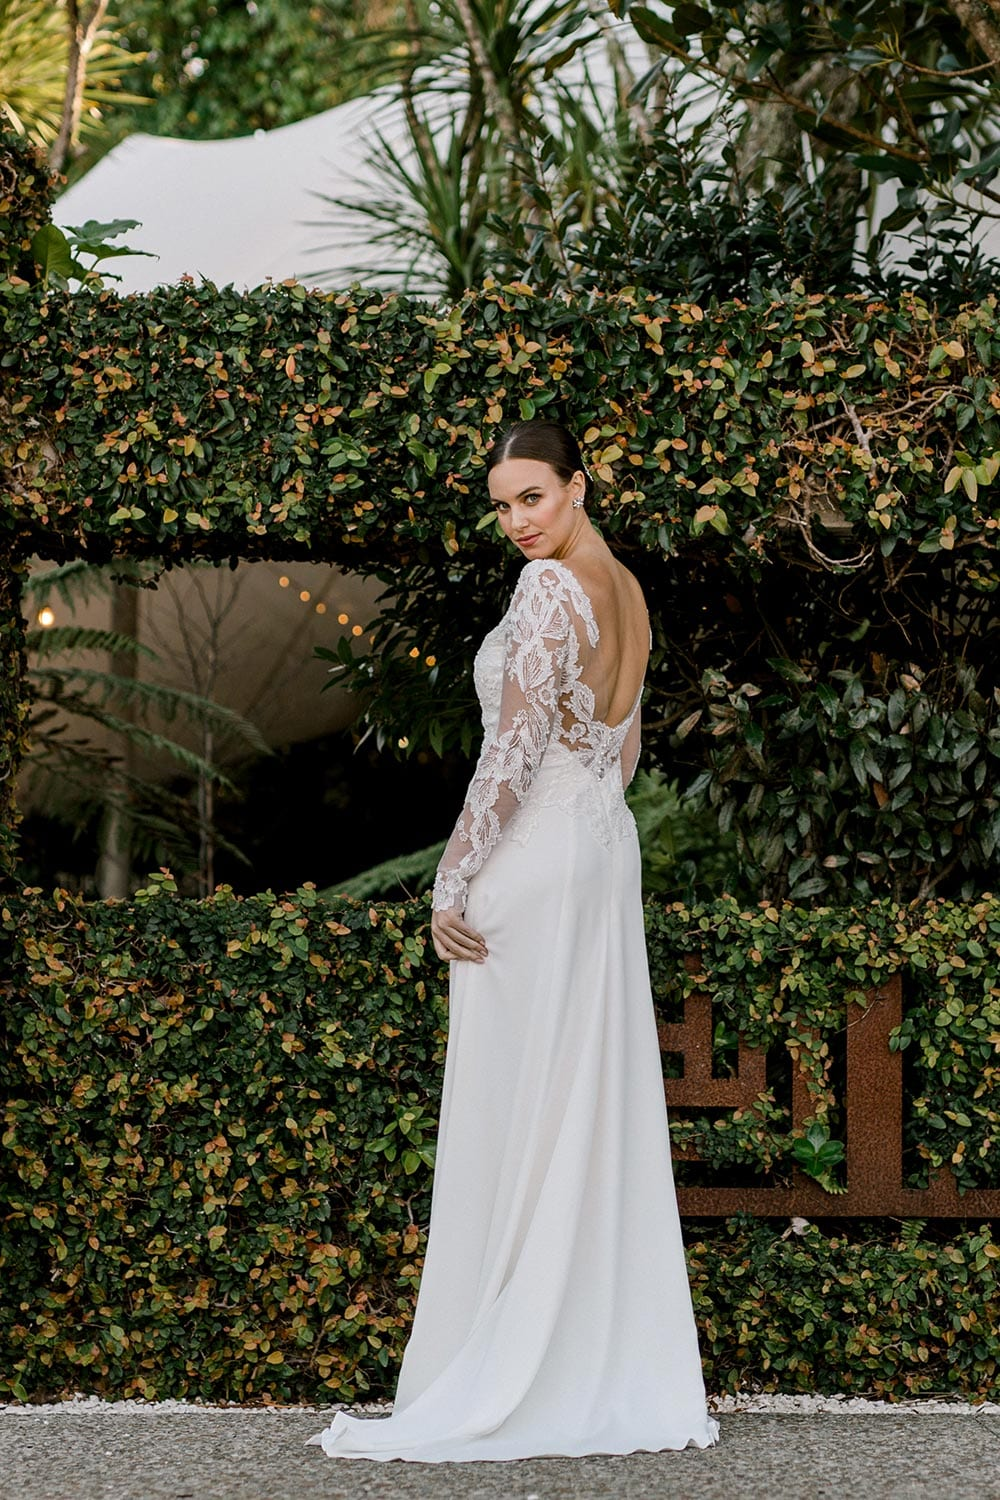 Ariel Wedding Dress from Vinka Design. Wedding dress with illusion scoop neckline & sheer low back with beaded lace. Long, fitted lace sleeves with pearl buttons & A-line skirt that falls into a train. Full length dress detail to the side, photographed at Tui Hills by Emmaline Photography.